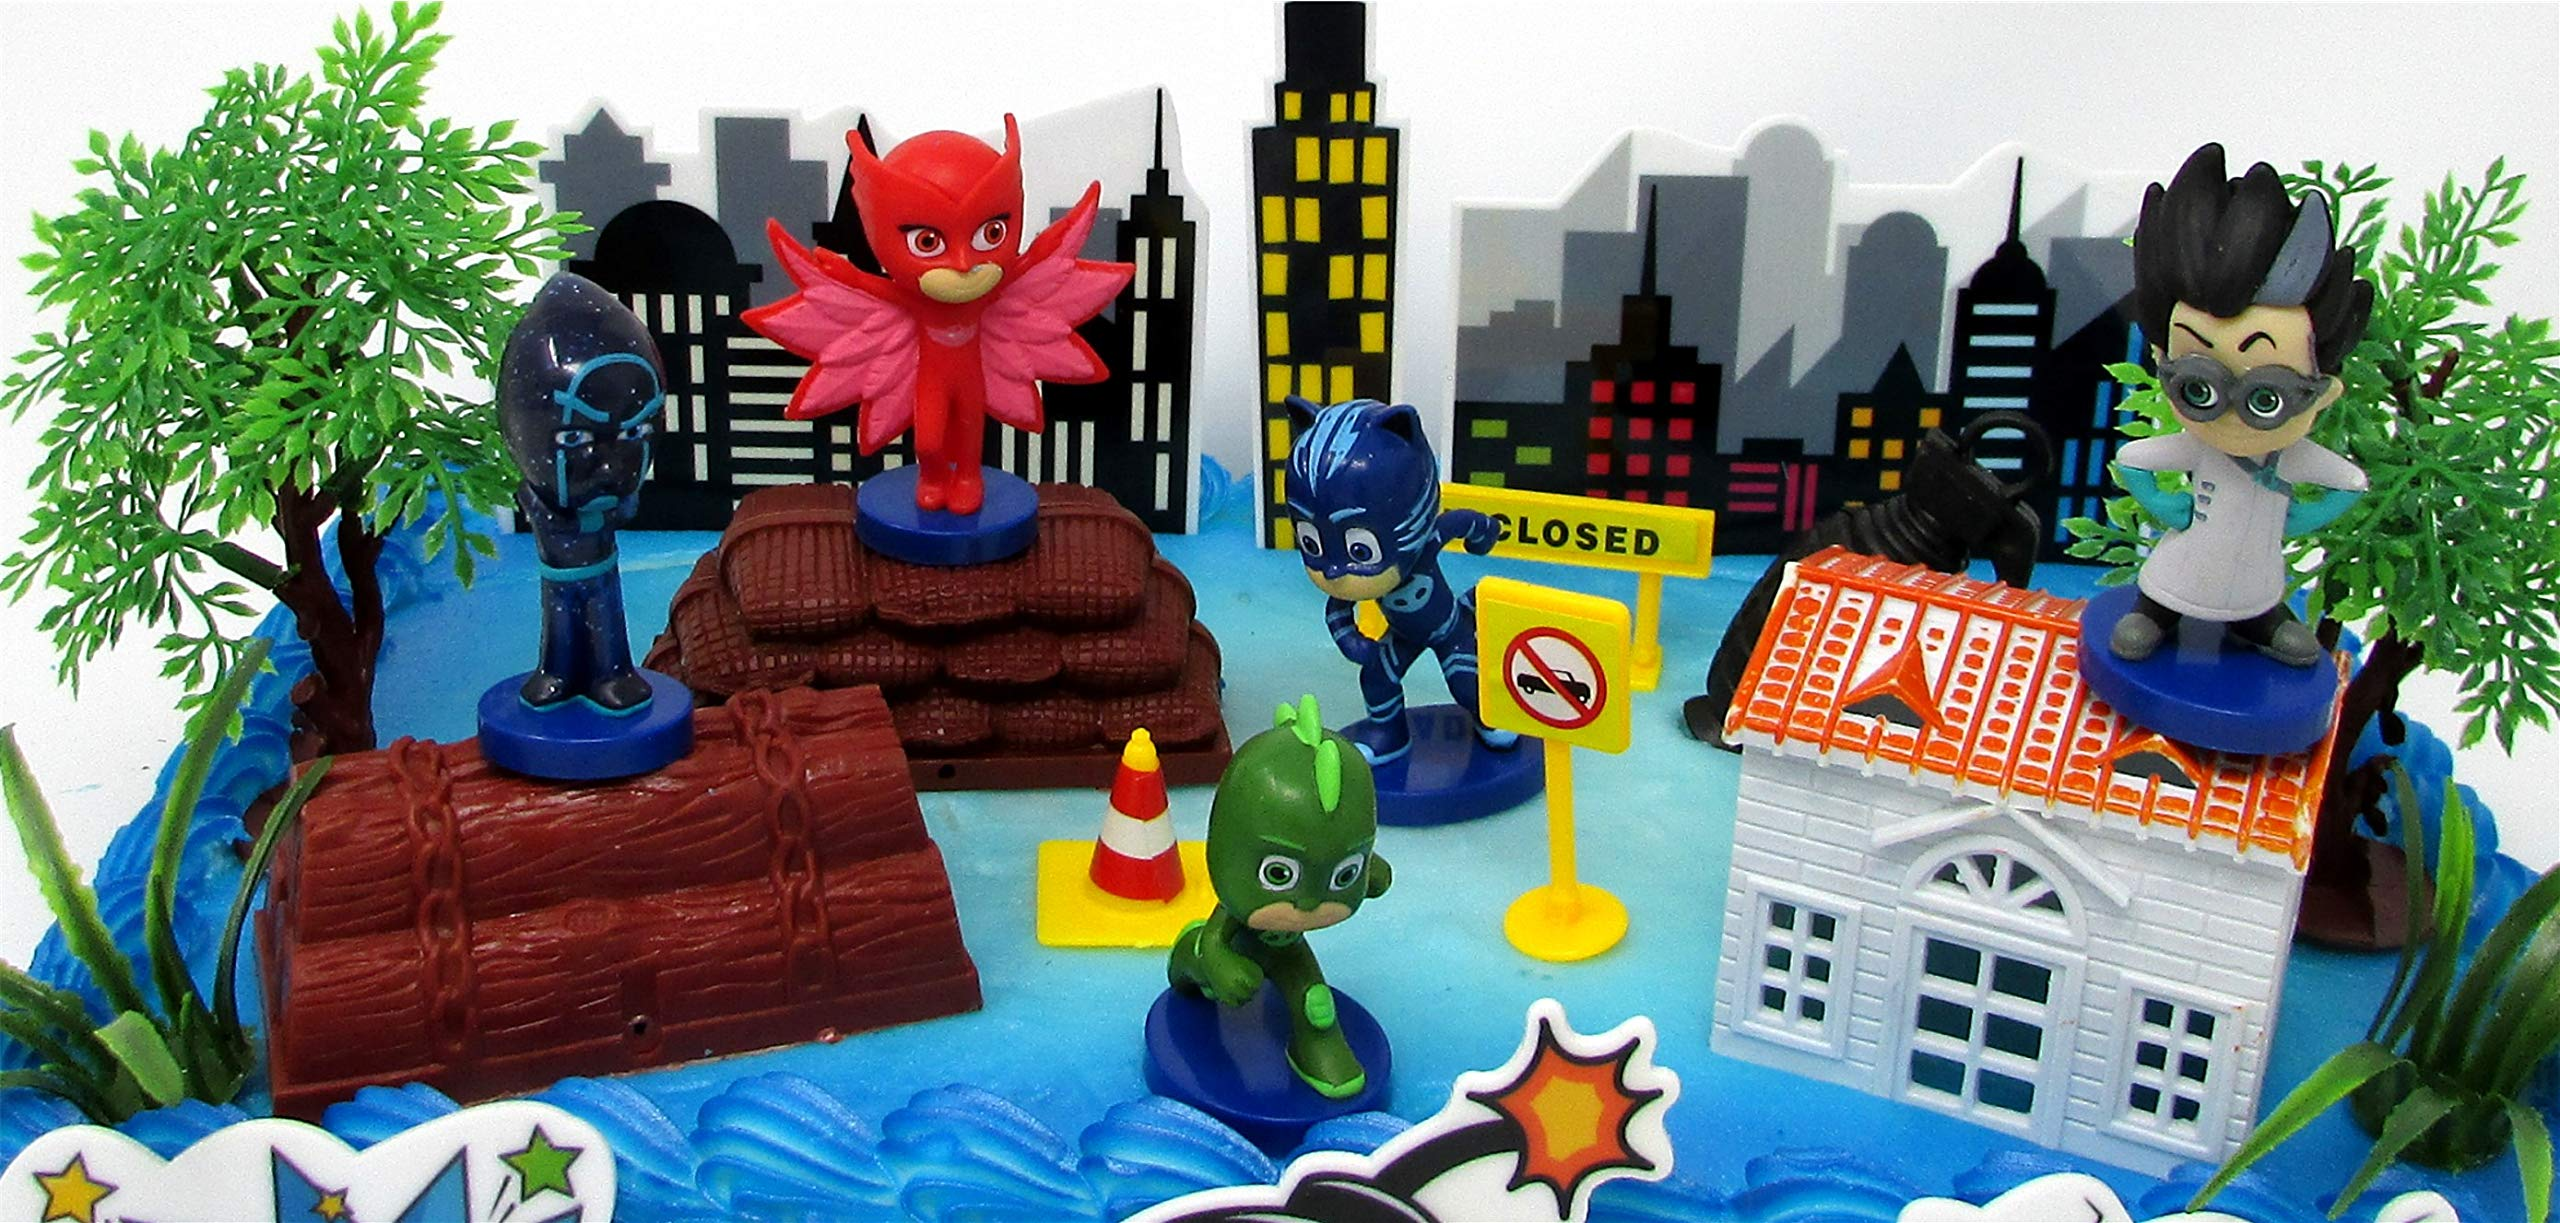 Super Hero PJ MASKS Deluxe Birthday Party Cake Topper Set Featuring Figures and Decorative Accessories by Cake Toppers (Image #5)